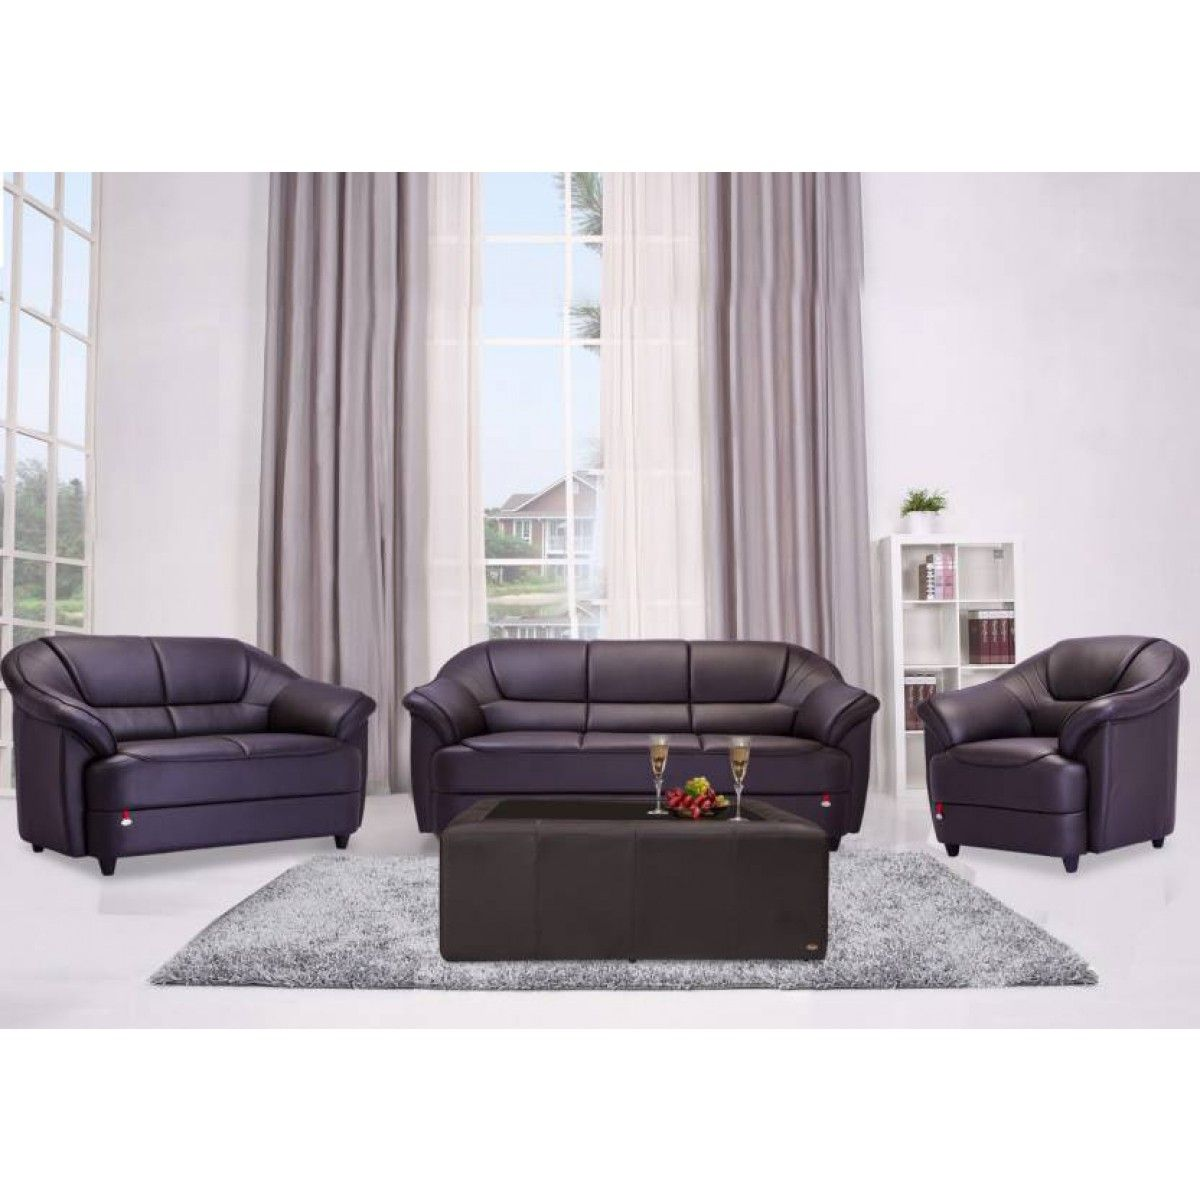 Pretty Designer Sofa Set. Best Buy At Gorevizon.com | This Sofa Can Give  The Best Feeling Of Rest !!